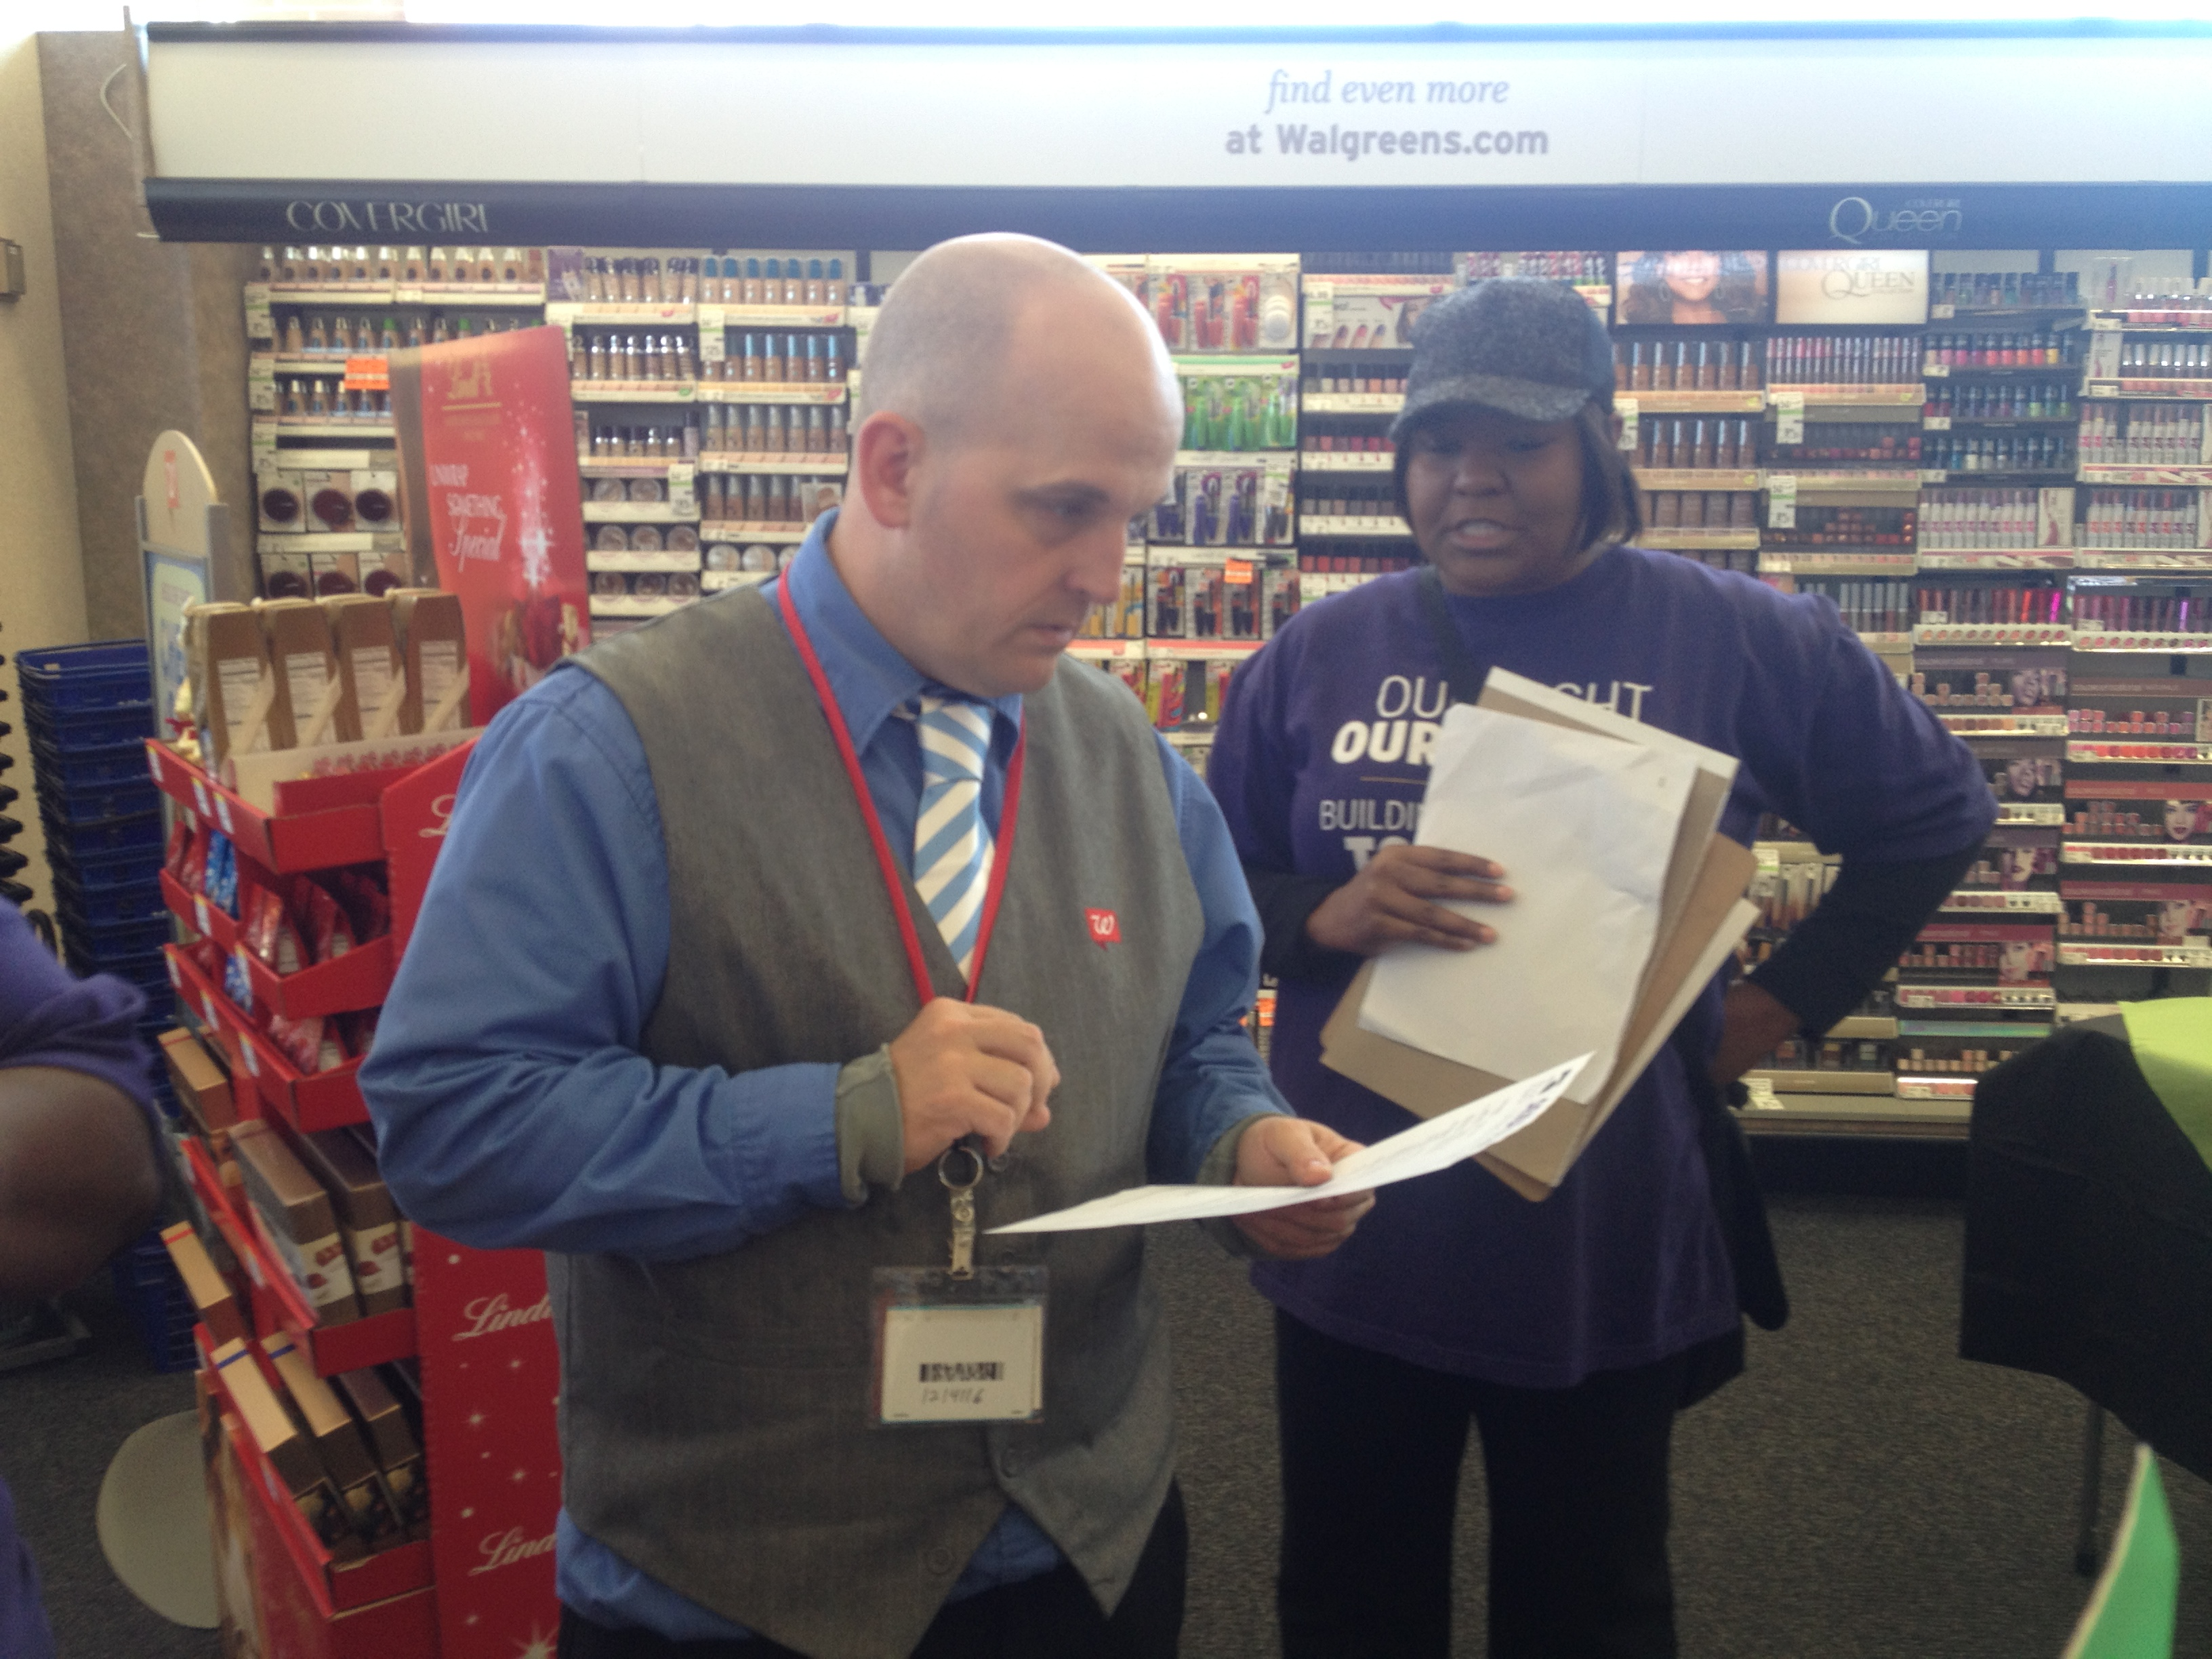 Walgreens_Manager_w_letter_fair_tax_boom_camp_11_01_13